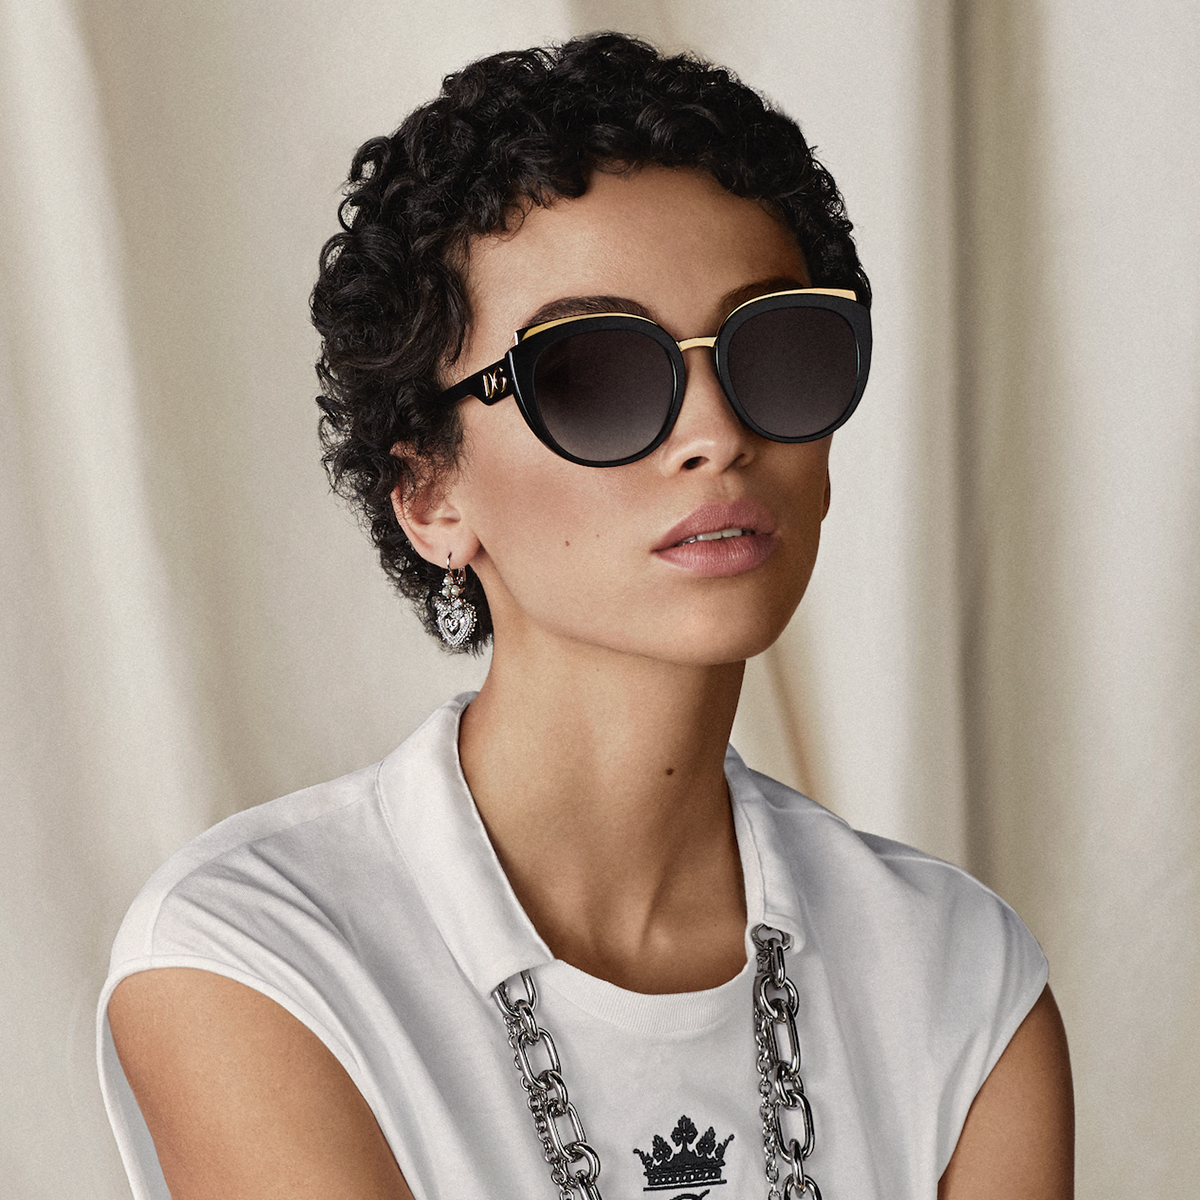 The #DolceGabbana sunglasses include gold metal details on a black acetate frame.  Discover the #DGEyewear at the link: